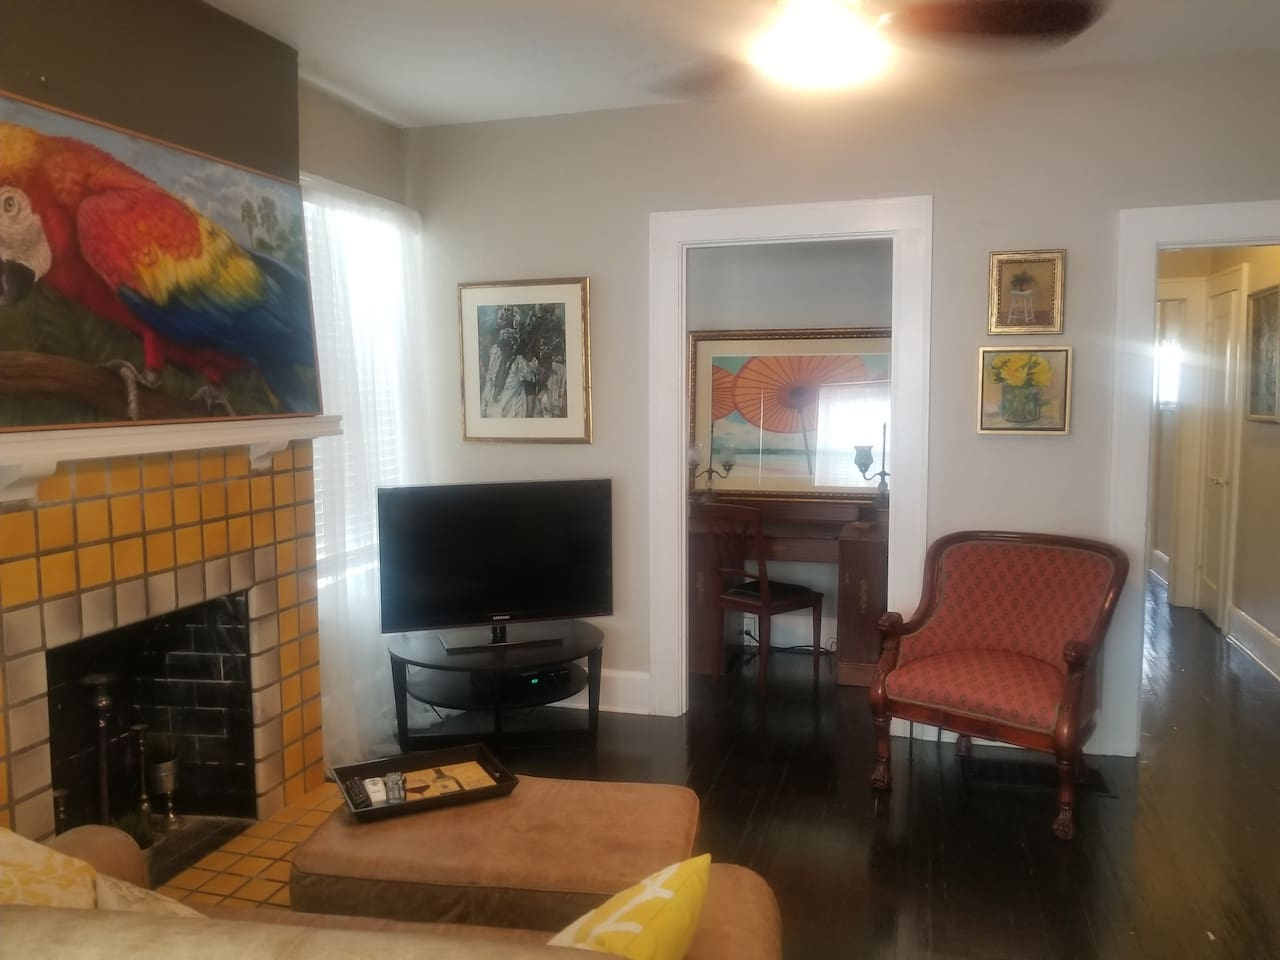 Living room with original 1920's tile fireplace, smart tv, adjoining office alcove